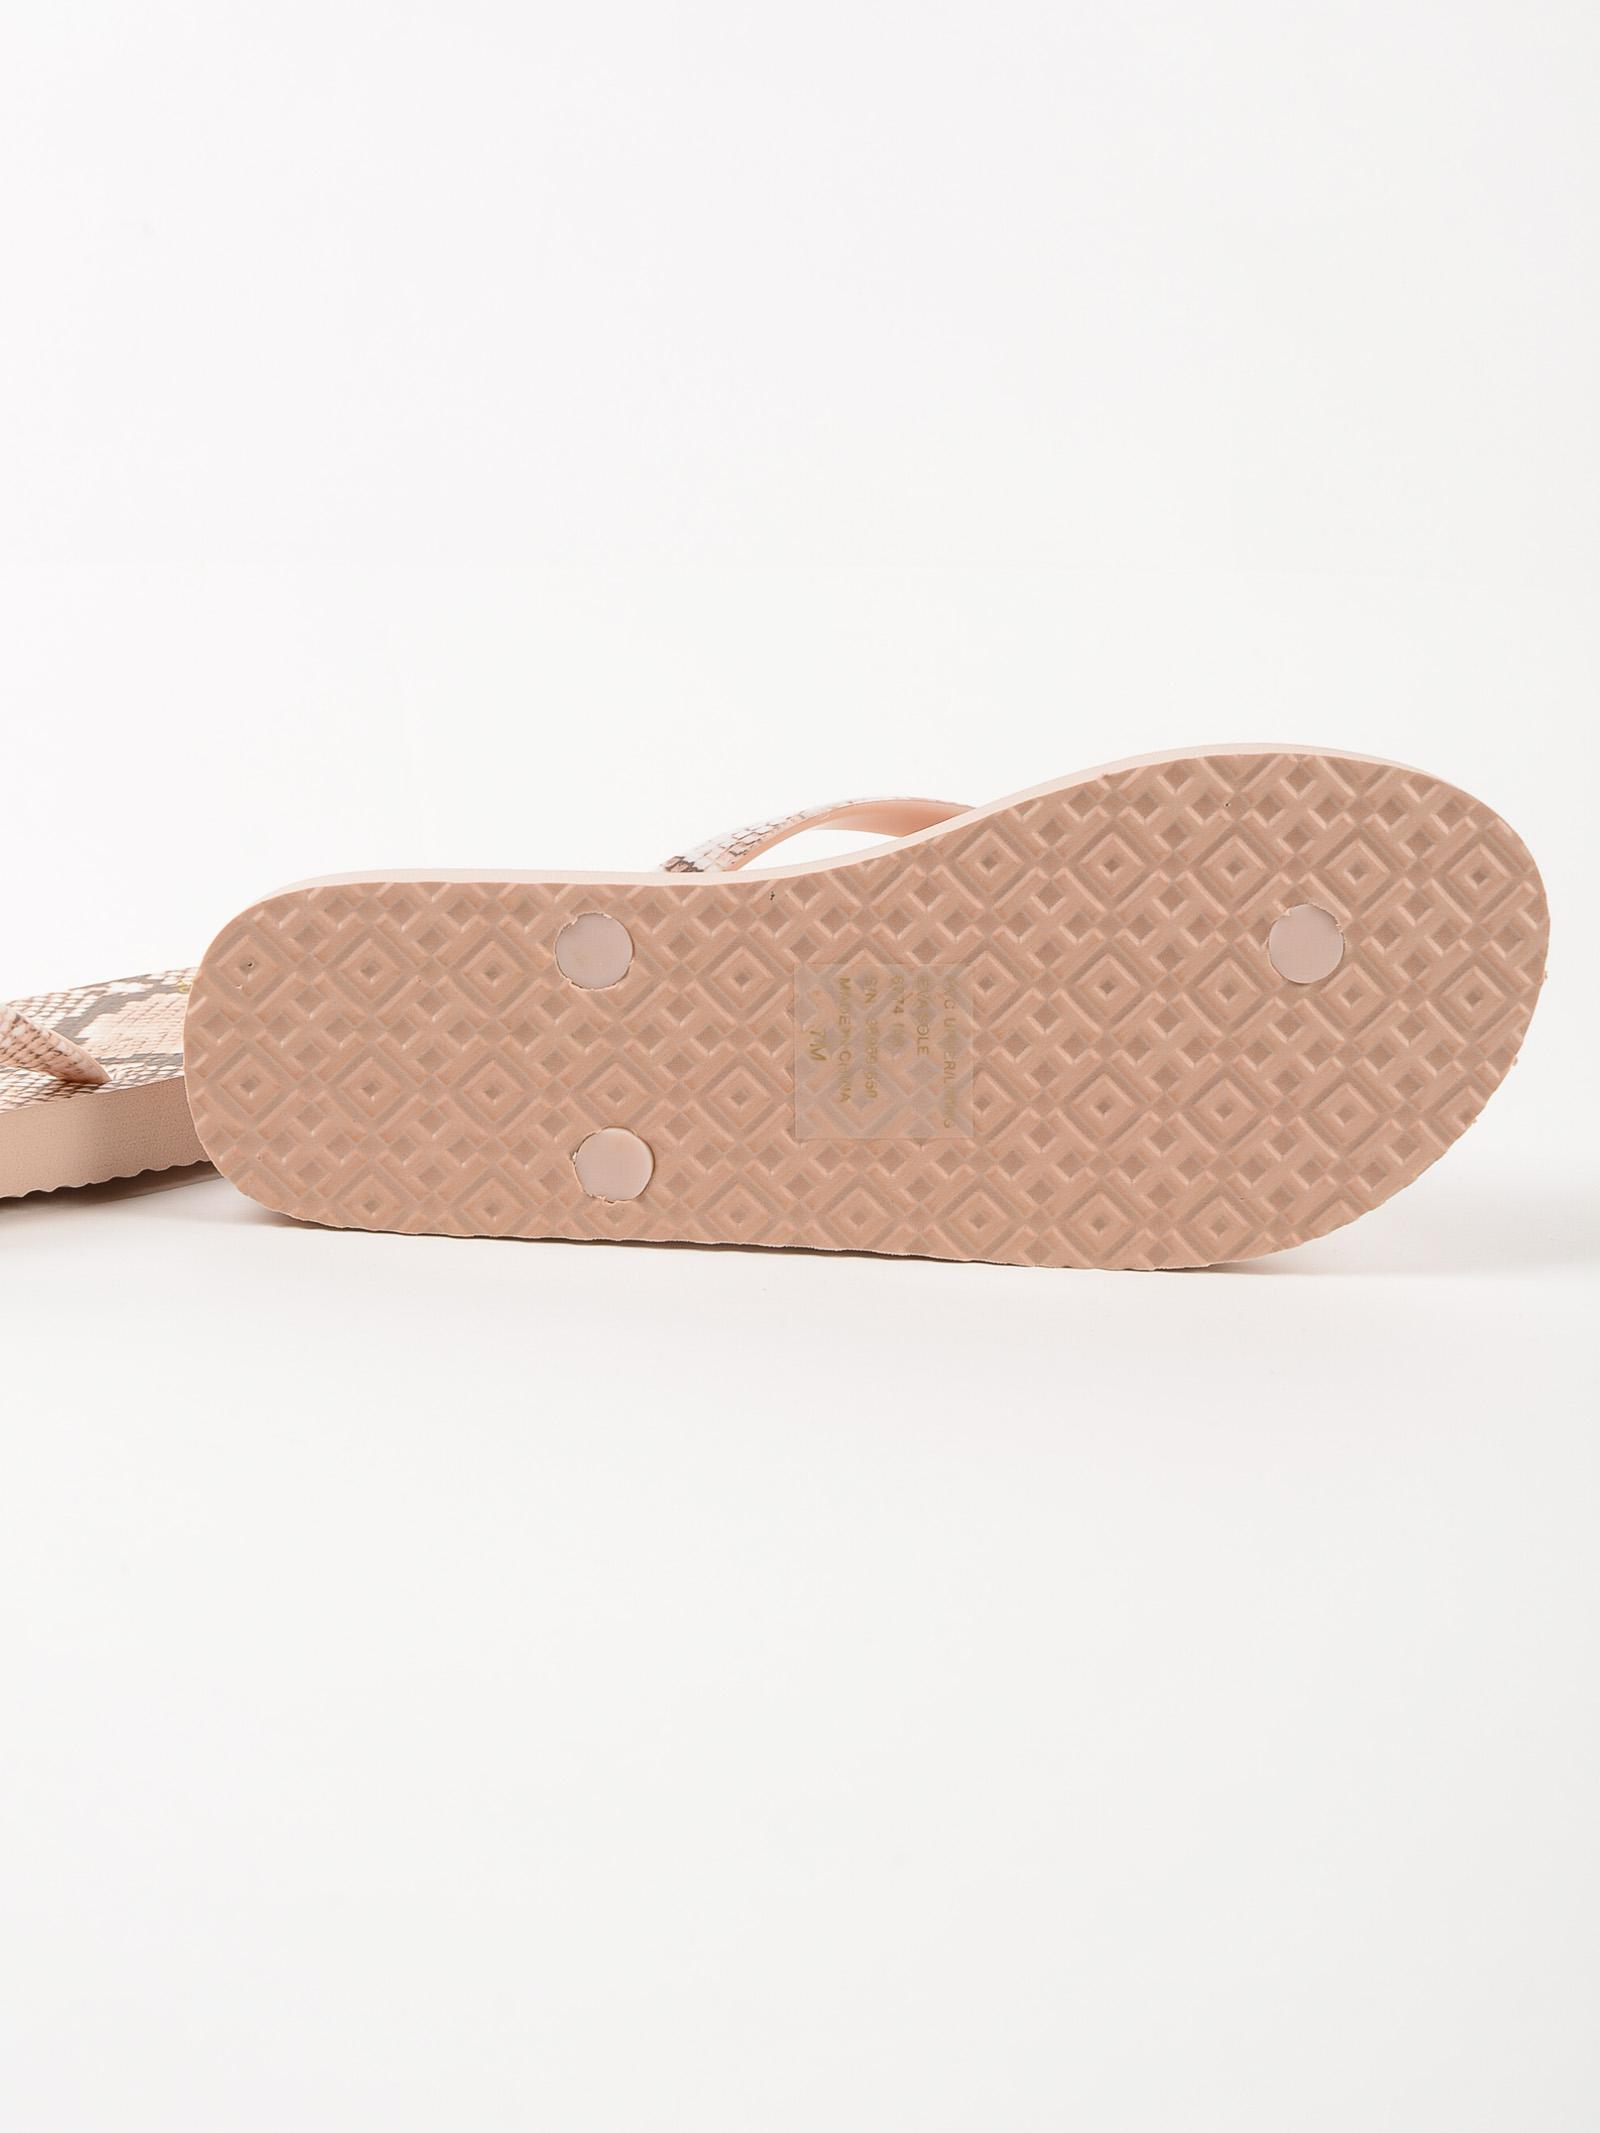 Tory Burch Printed Thin Flip Flop In Pink - Lyst-7210